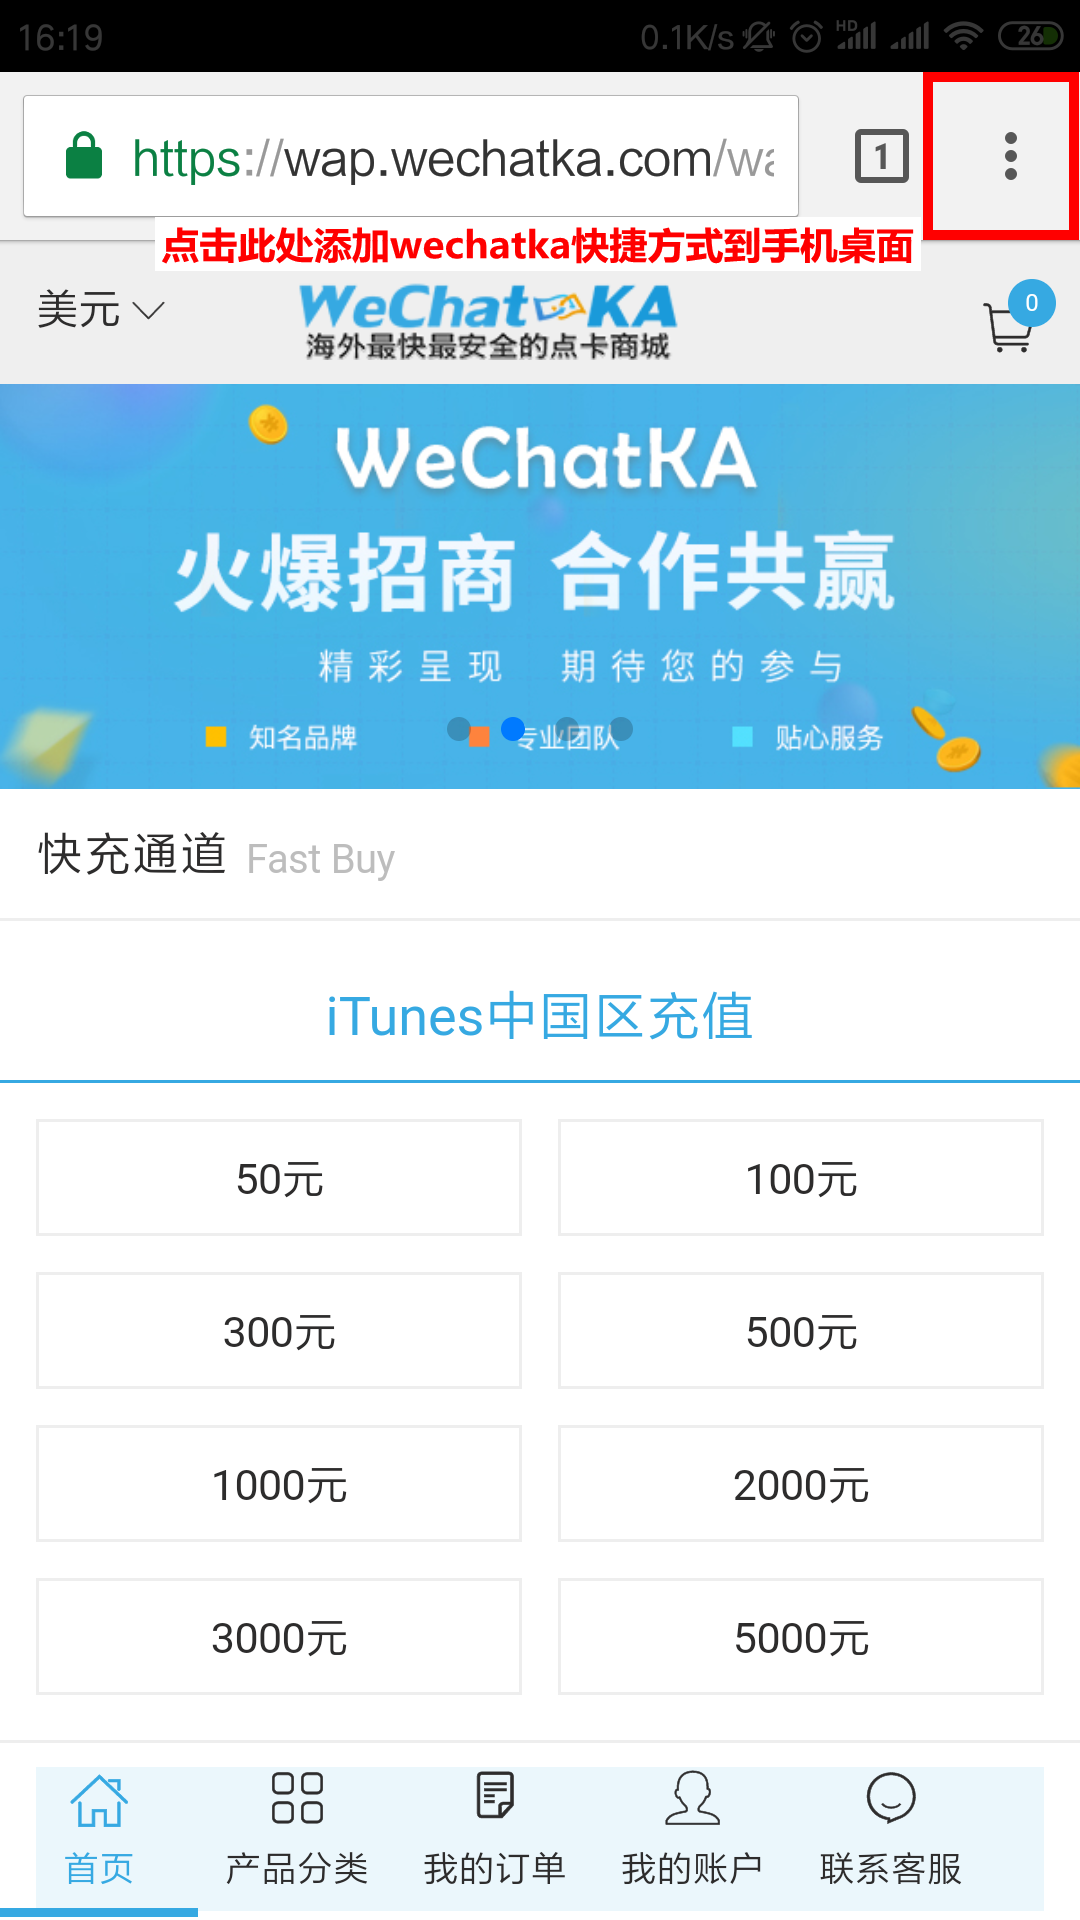 Android--Google--wechatka (1).png